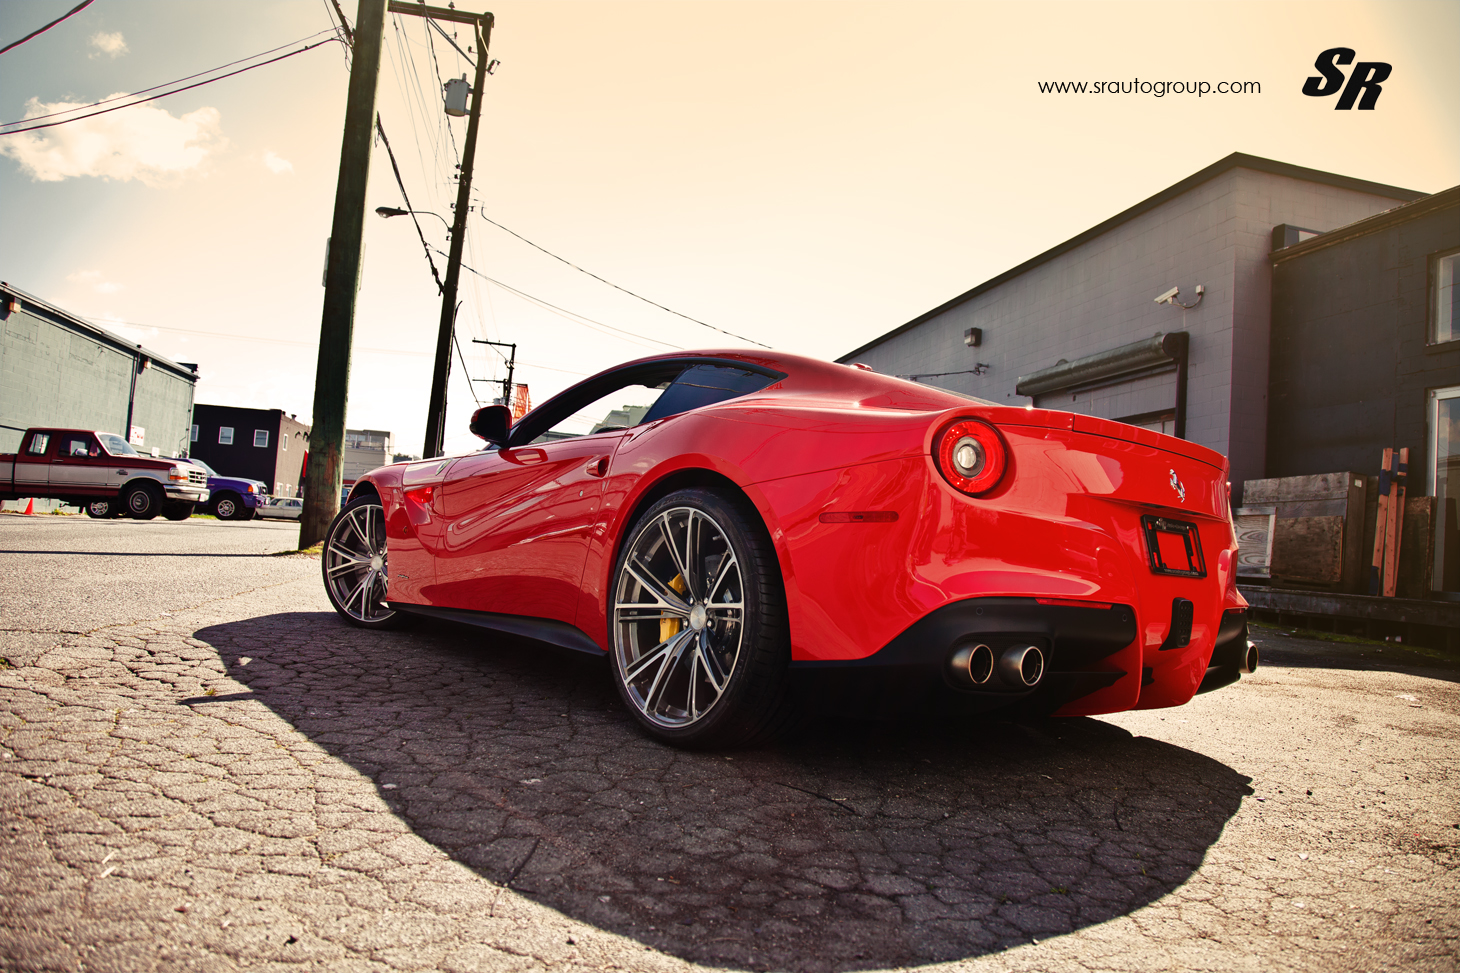 Ferrari F12 Berlinetta wheels #2